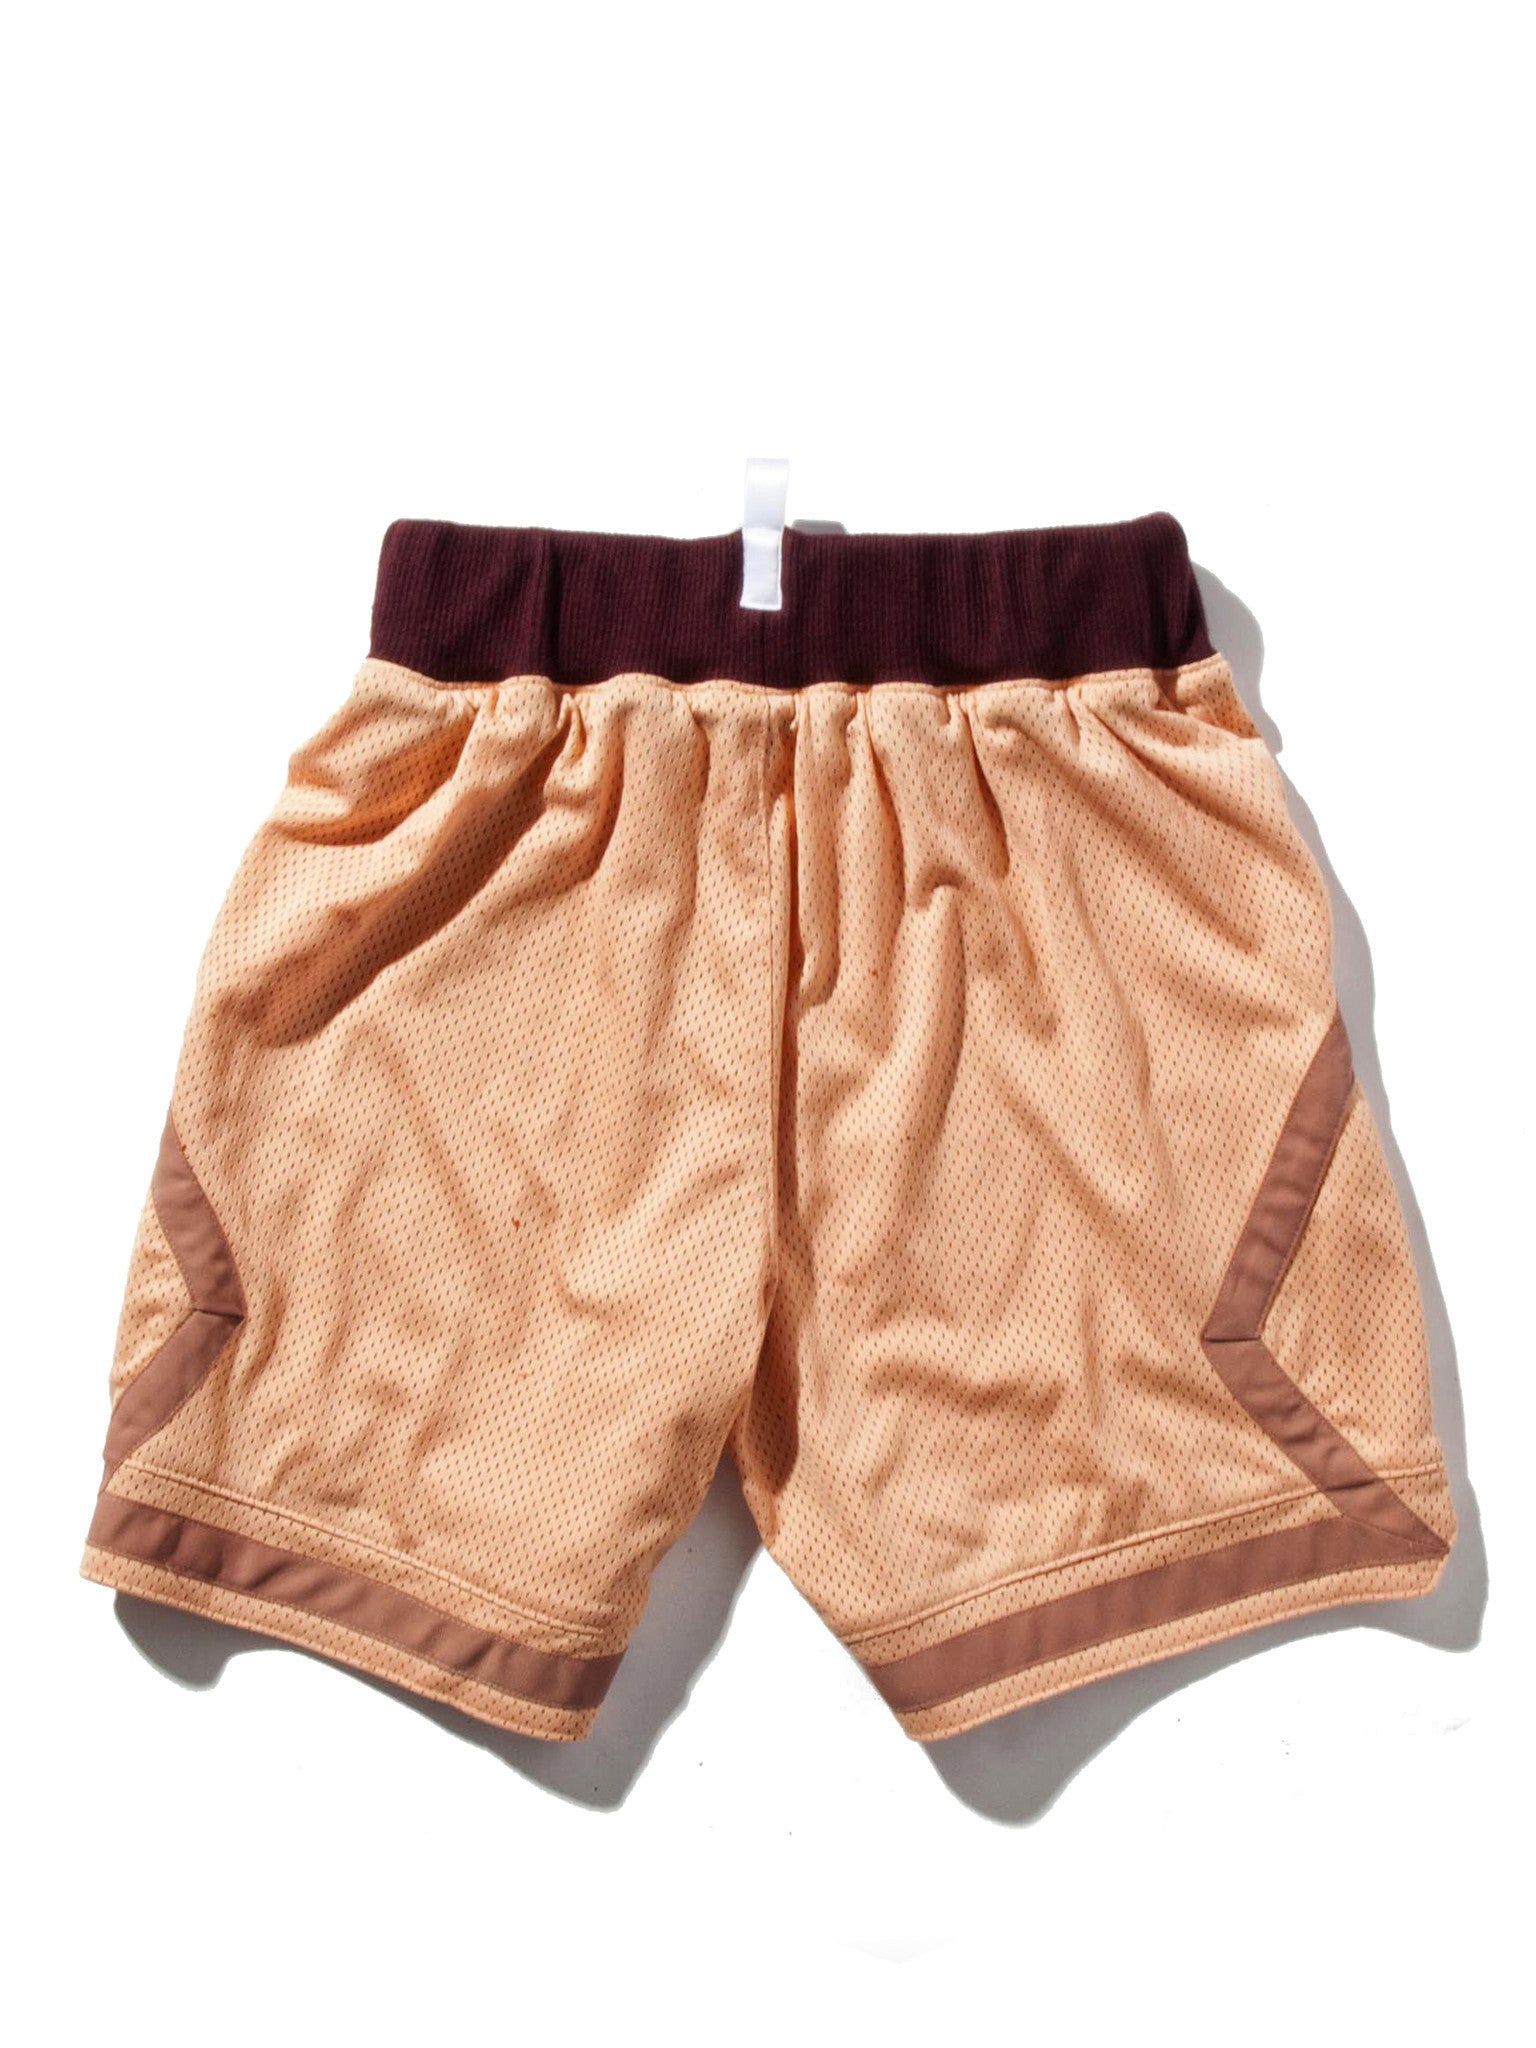 XL ABC x Eric Emanuel Shorts 9